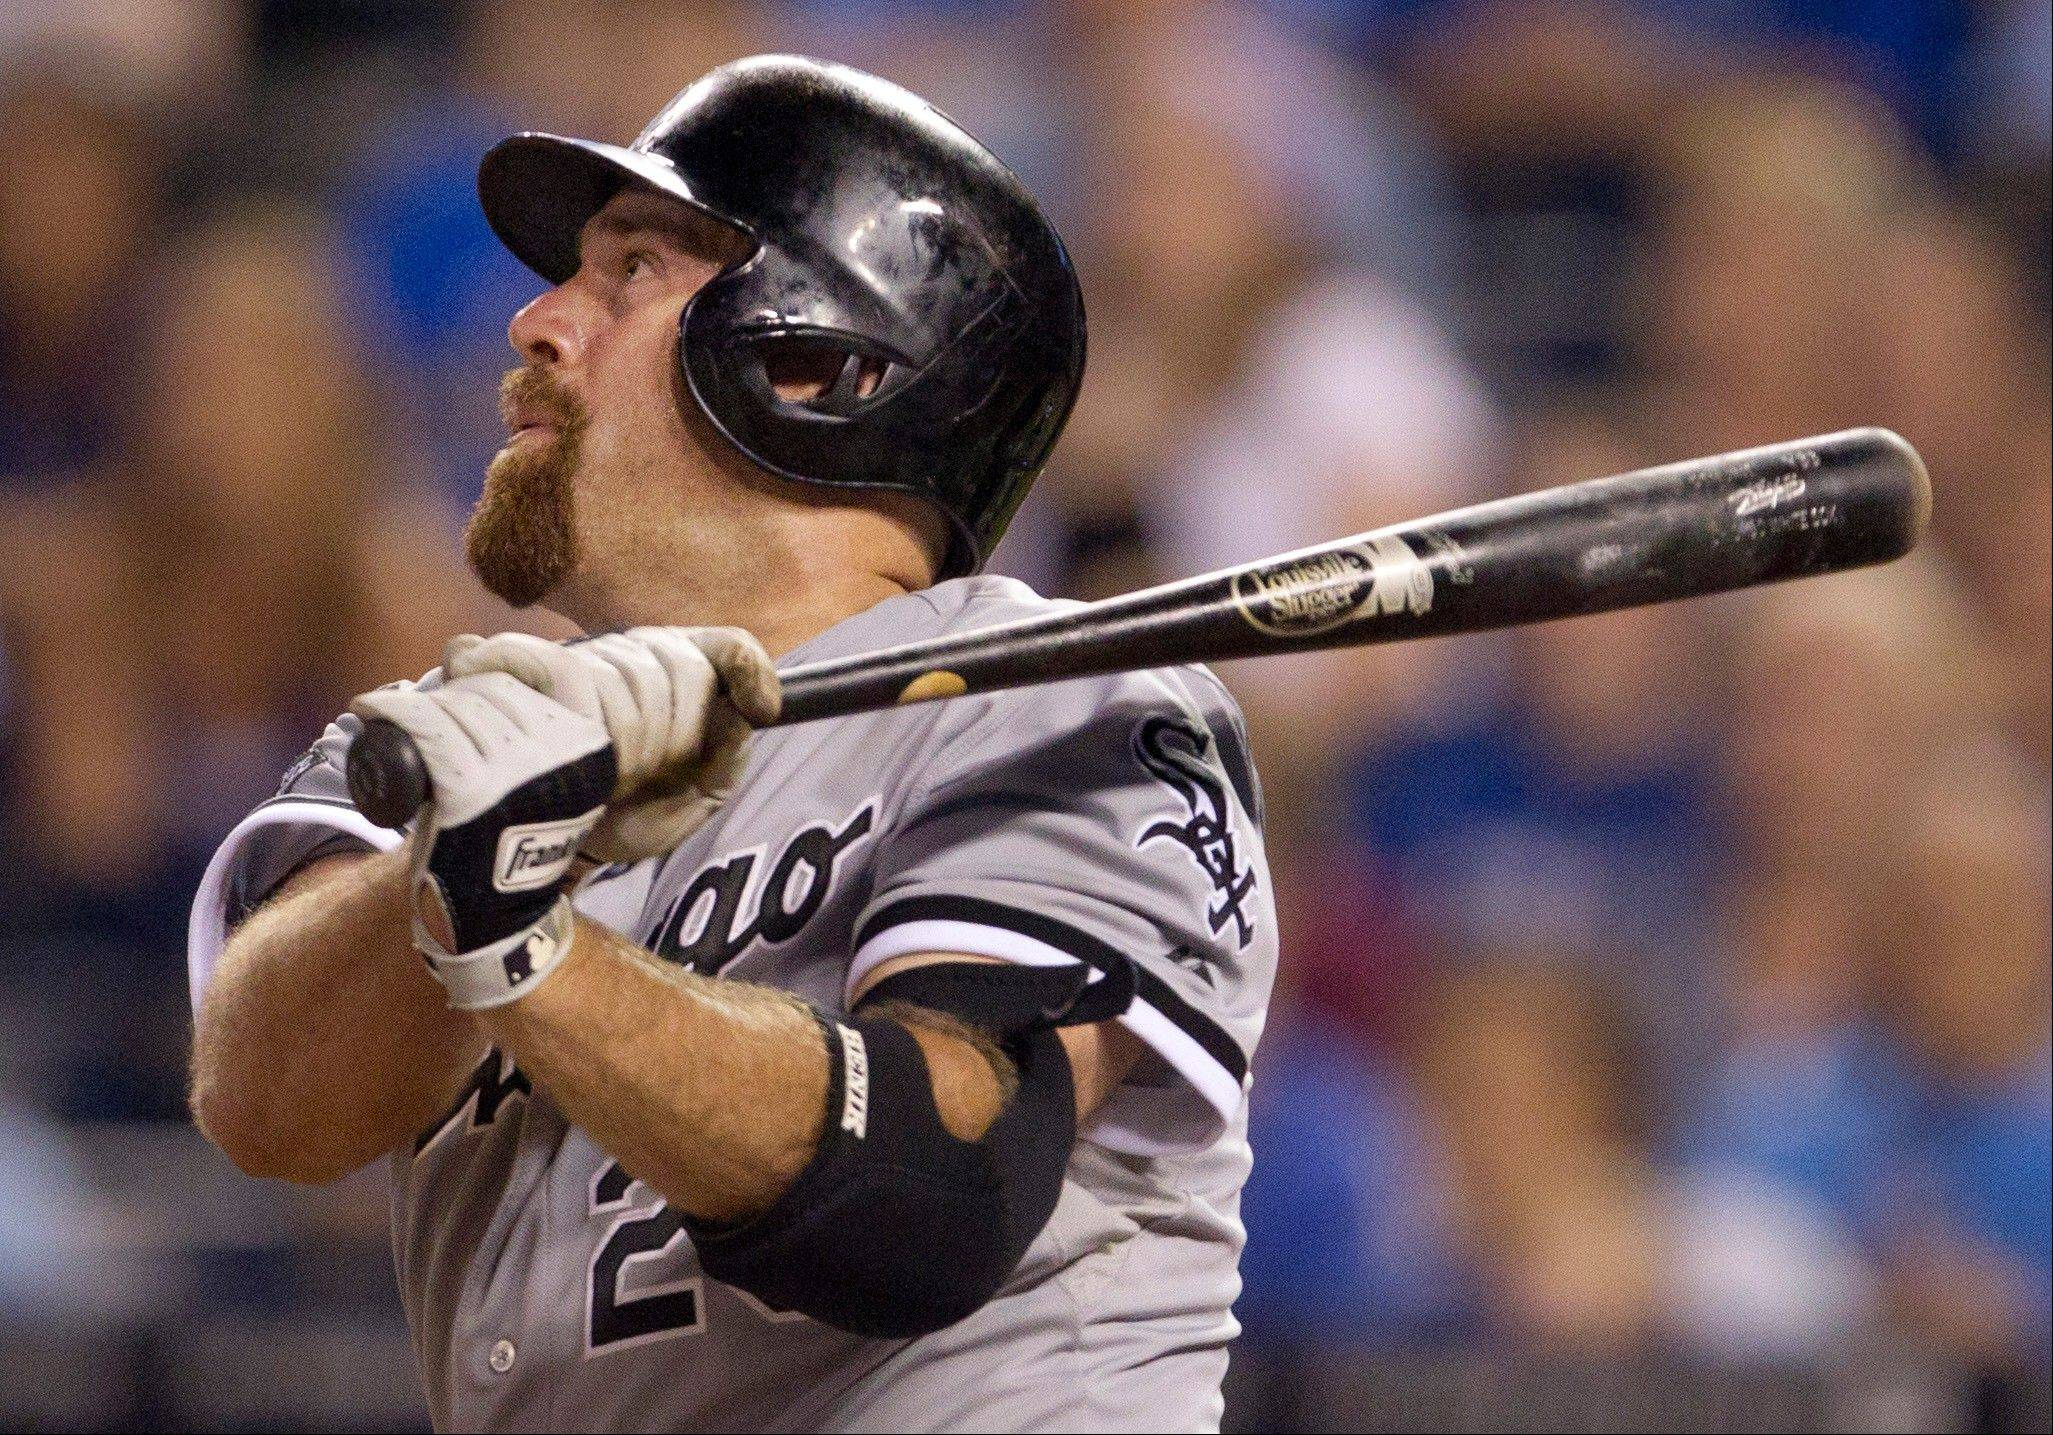 Kevin Youkilis hits the game-winning sacrifice fly in the 14th inning early Saturday in Kansas City, Mo. The White Sox defeated the Royals 9-8.